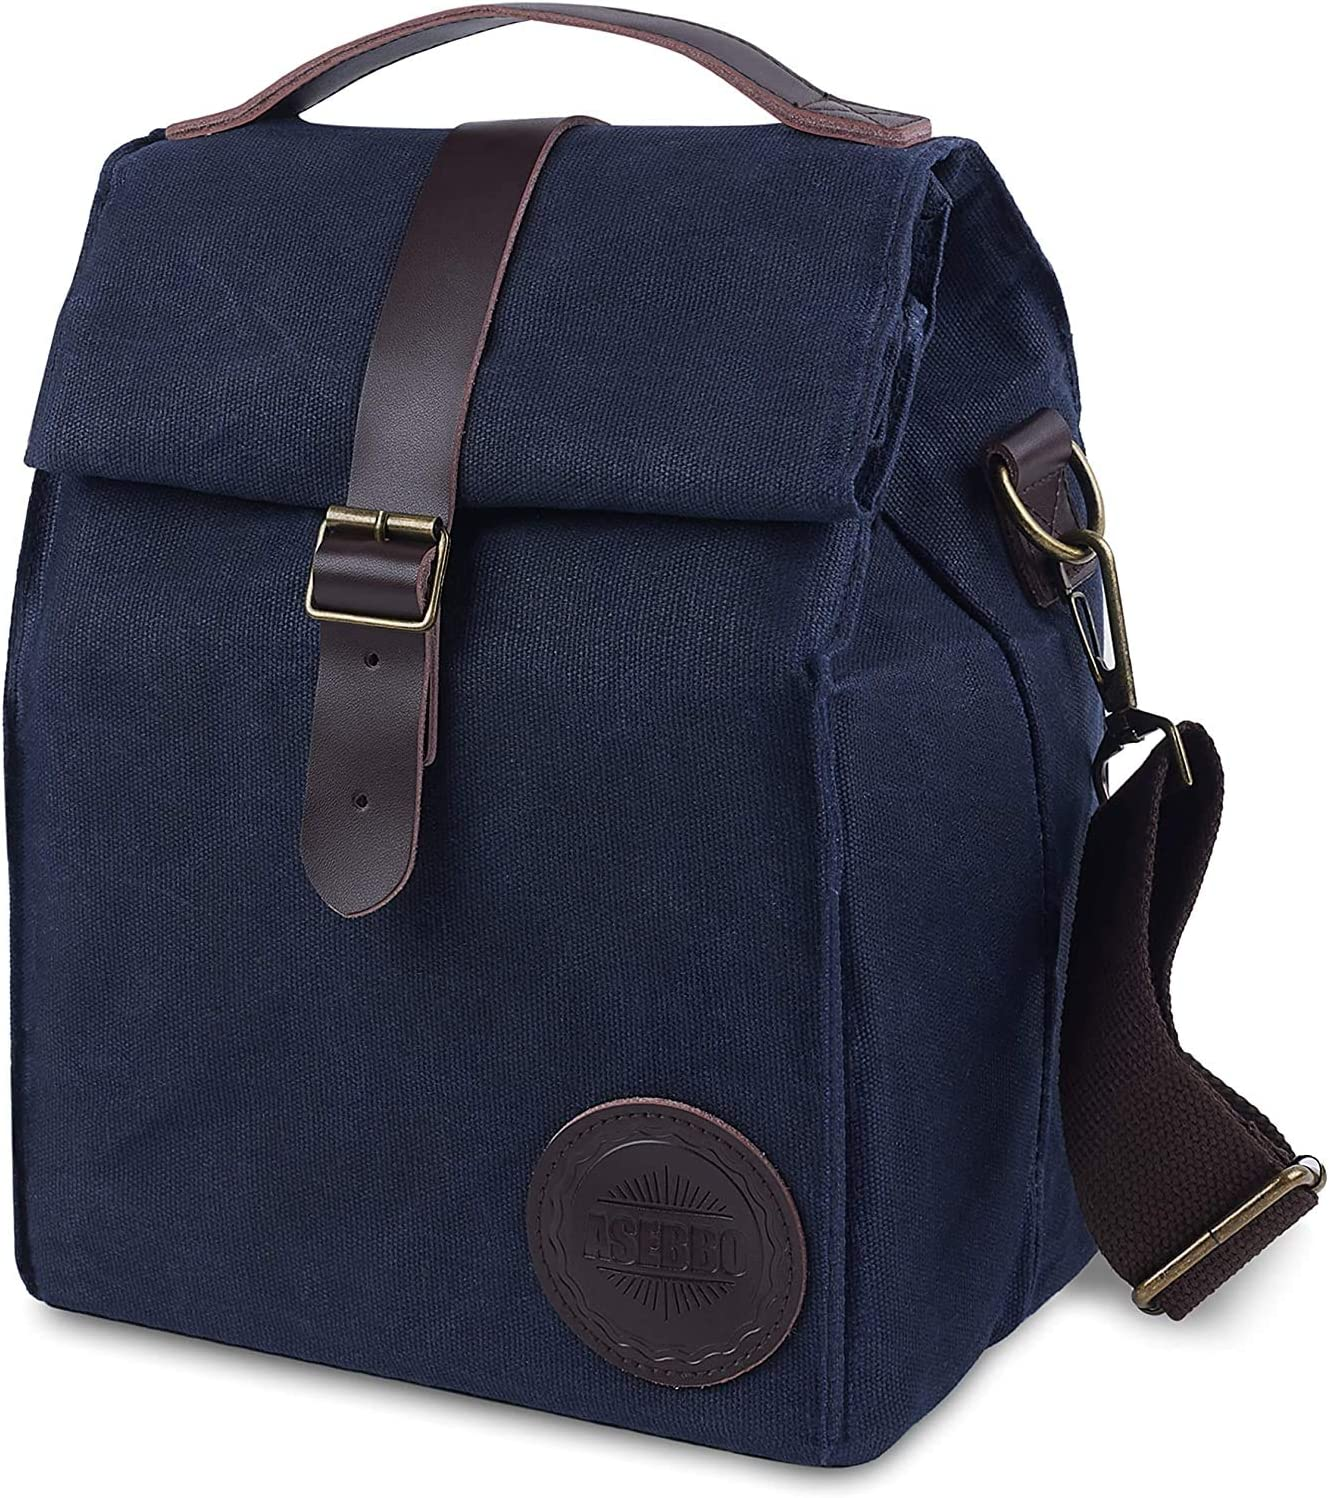 Insulated Waxed Canvas Lunch Bag by ASEBBO 10L Lunch Box for Women, Men with Genuine Leather Handle and Strong Buckle-Closure to Keep Your Food Cool, Lunch Tote, Adjustable Strap (Blue 2.0 IMPROVED)